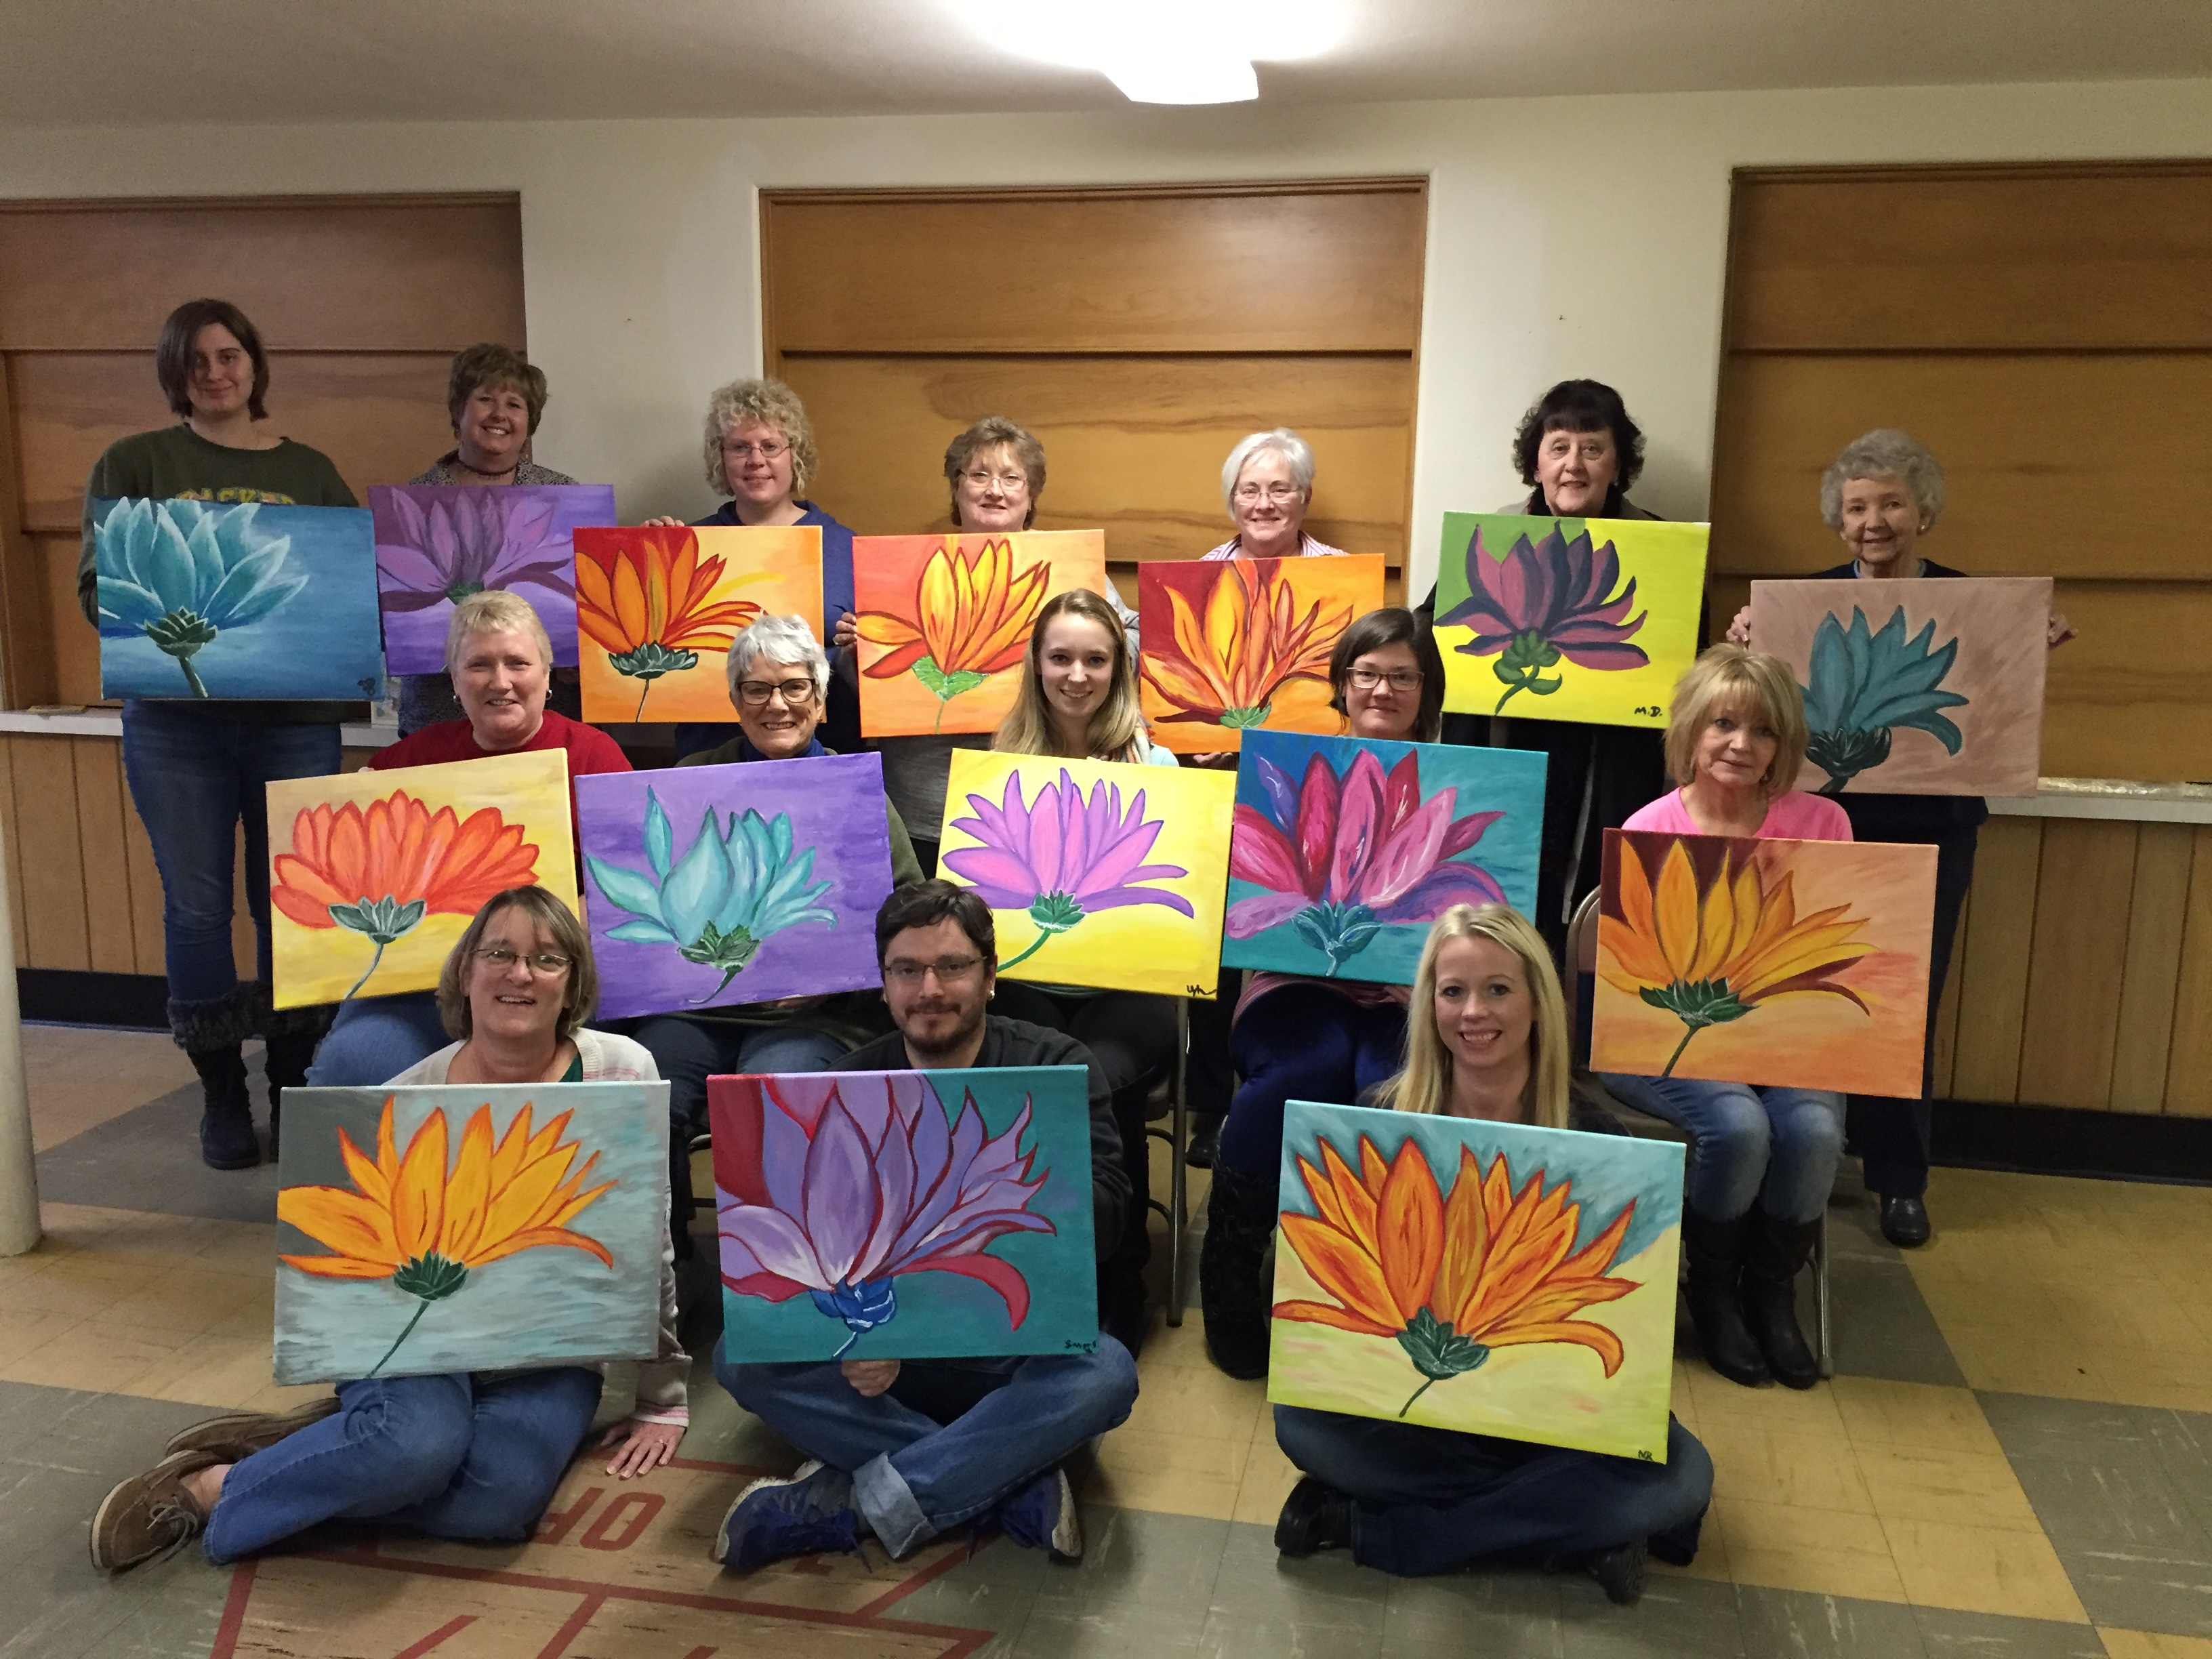 United Church of Beloit spent time together painting flowers of all kinds! 3/5/16